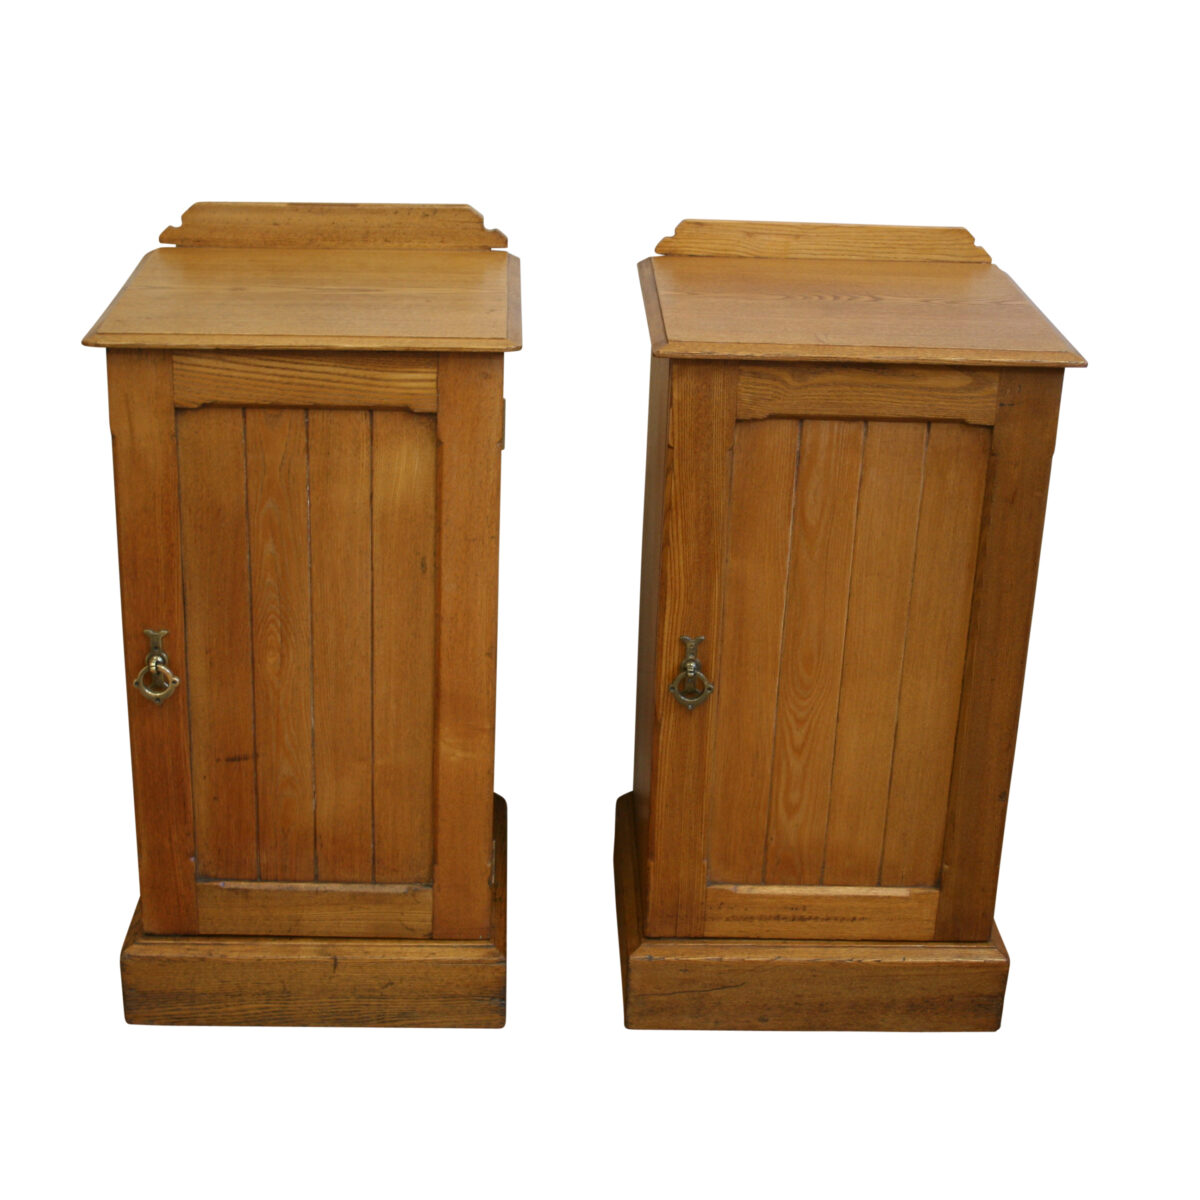 pair of Ash pot or bedside cupboards/williamsantiques